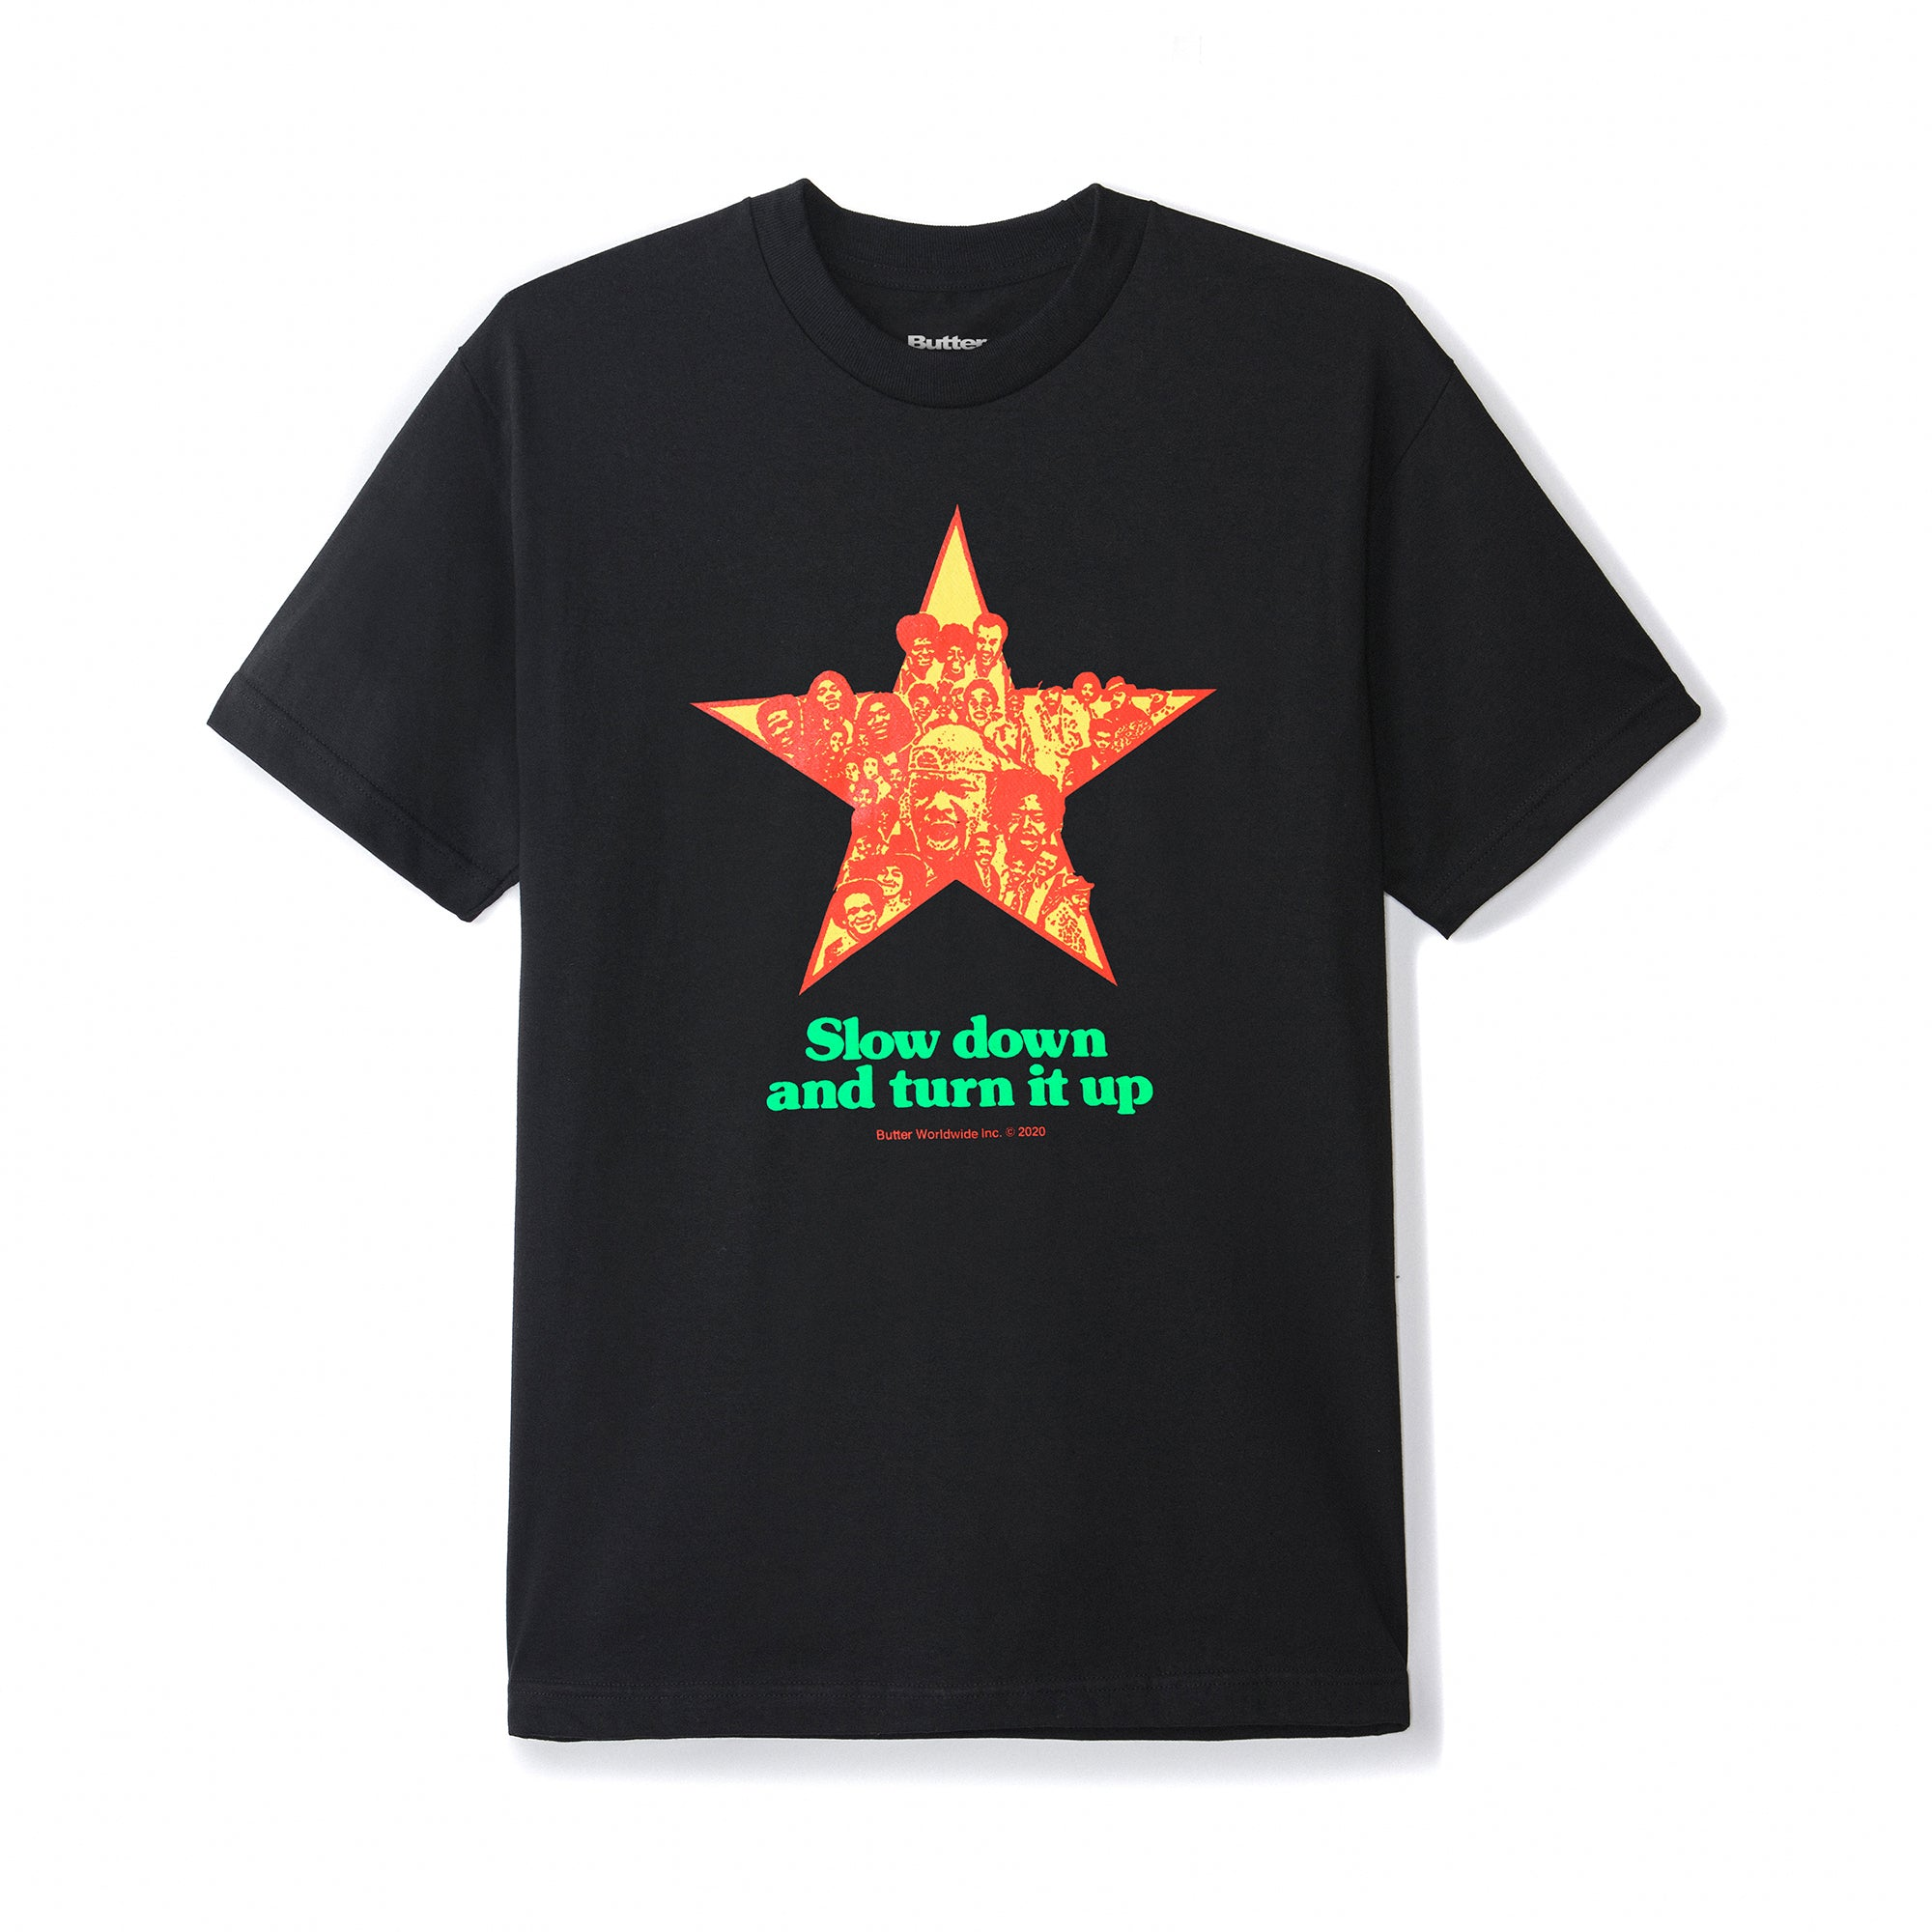 Butter Goods Turn It Up Tee Product Photo #1